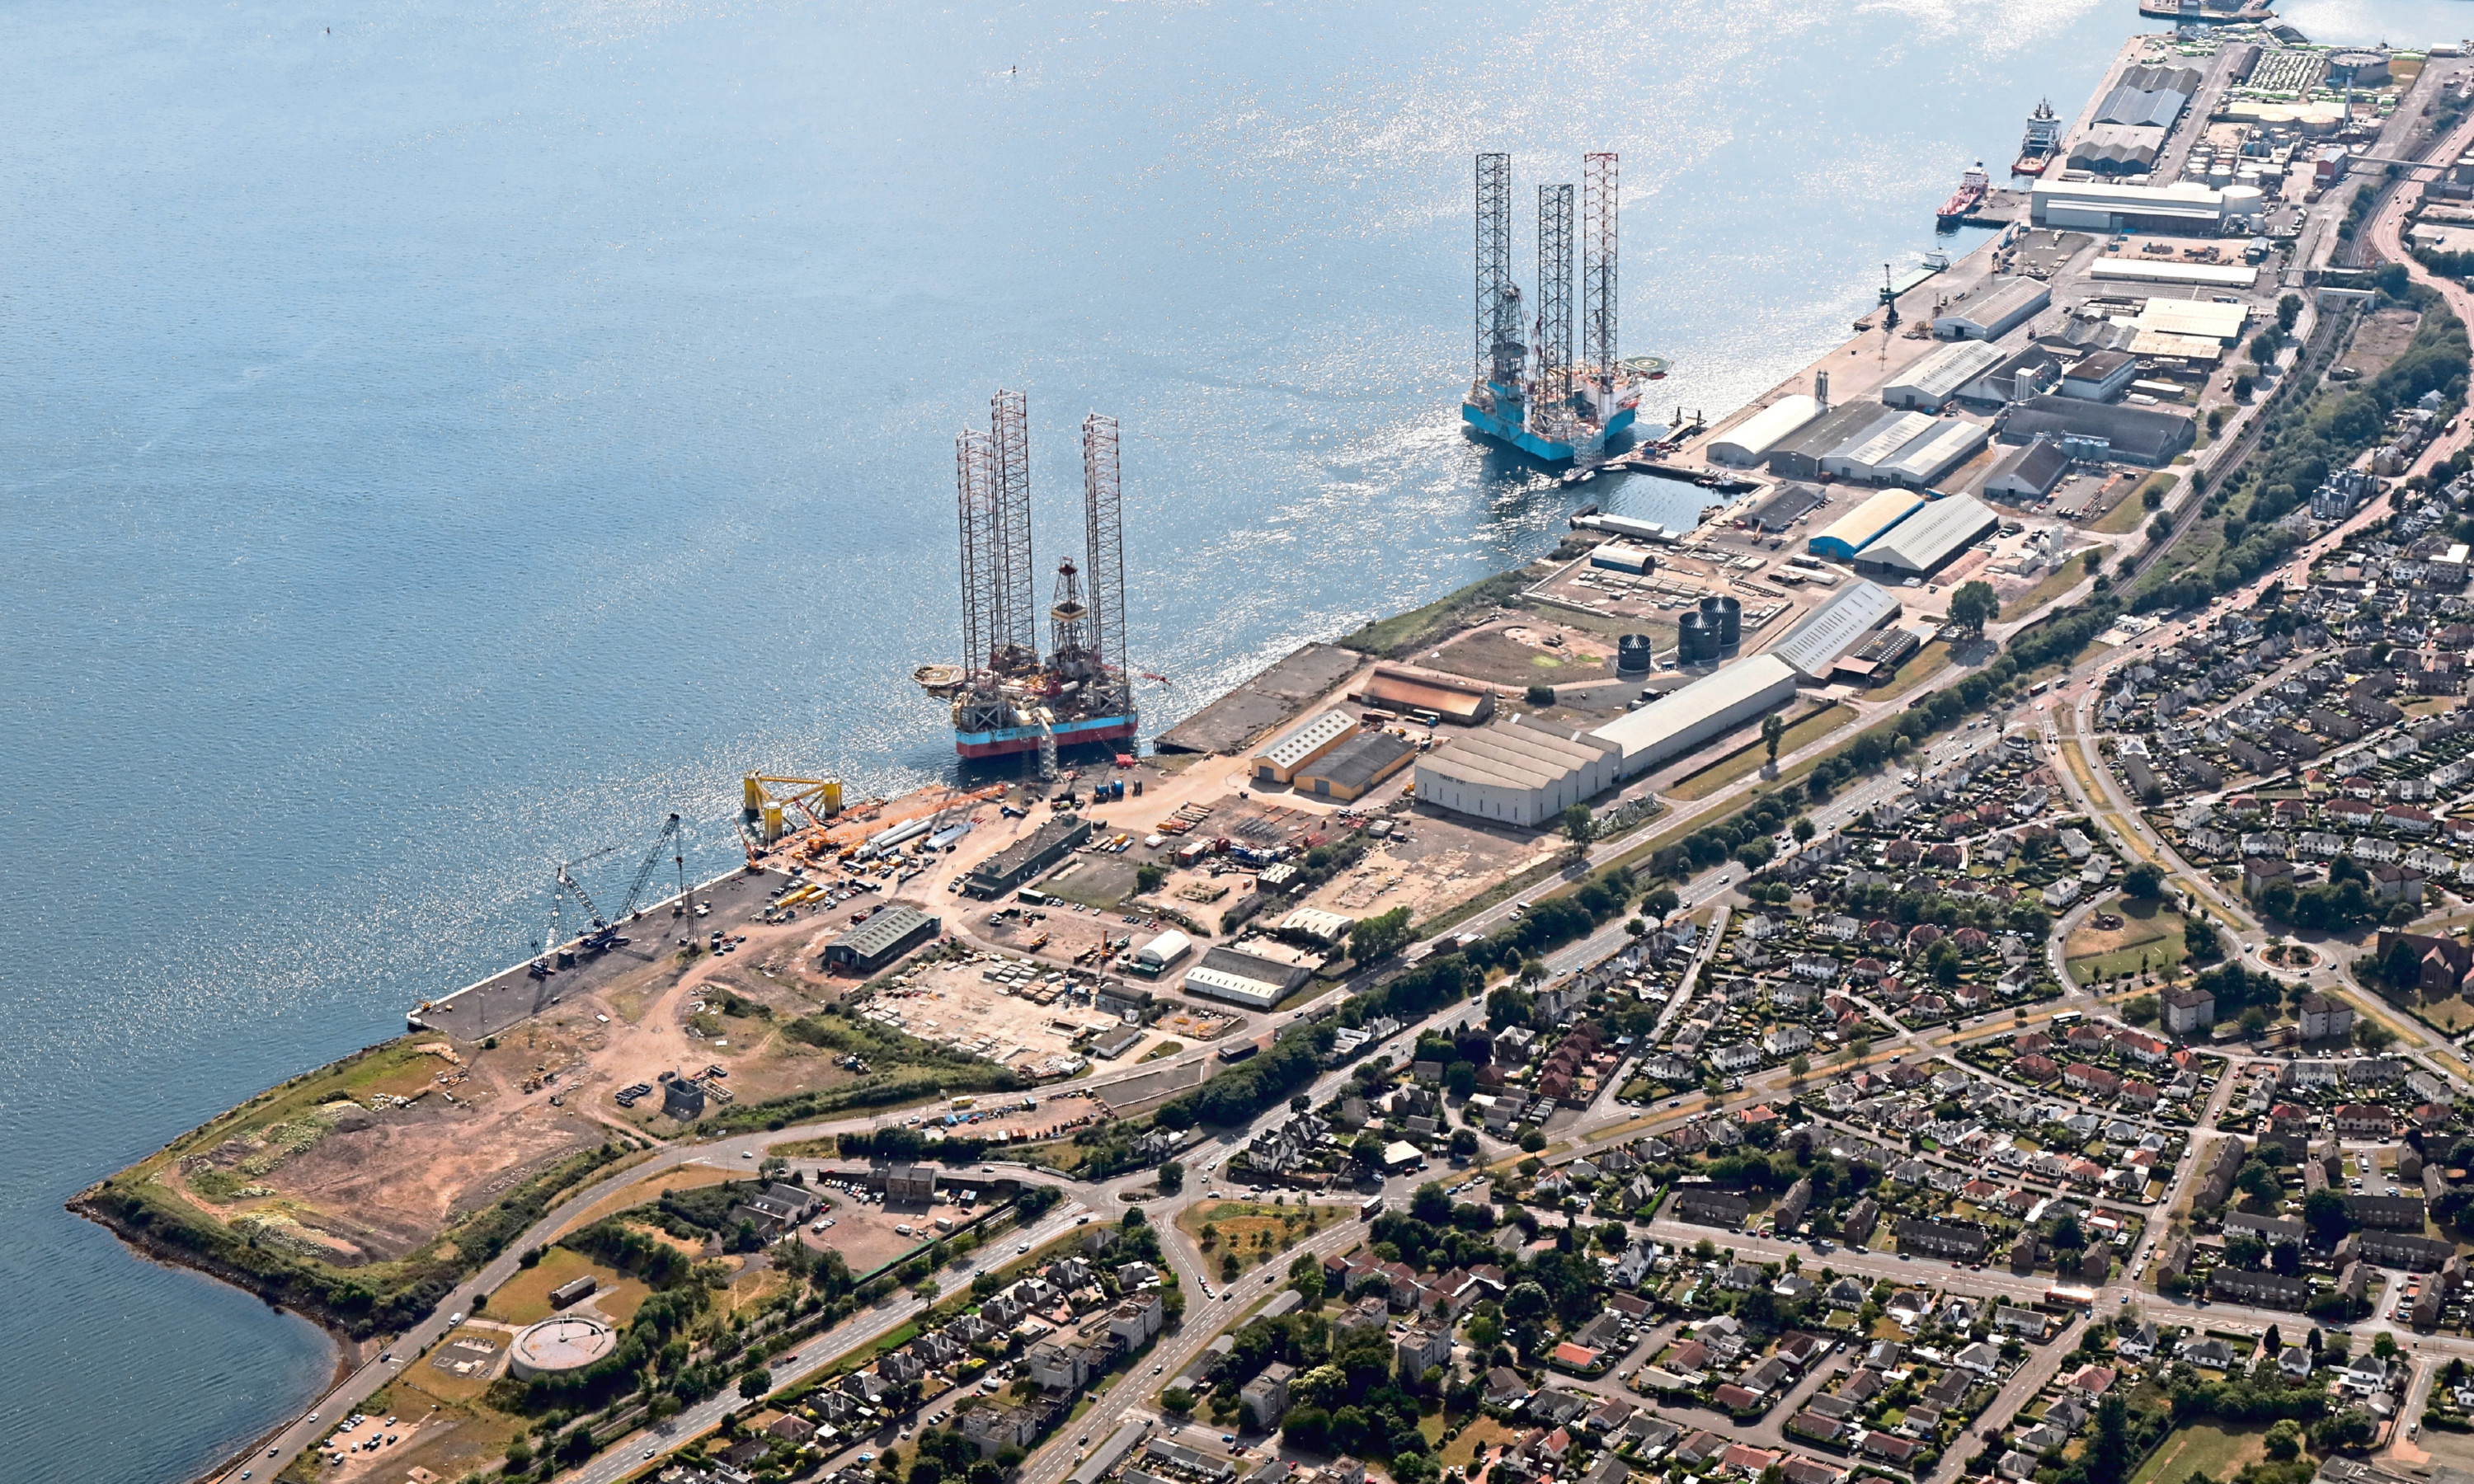 An aerial view of the Port of Dundee.